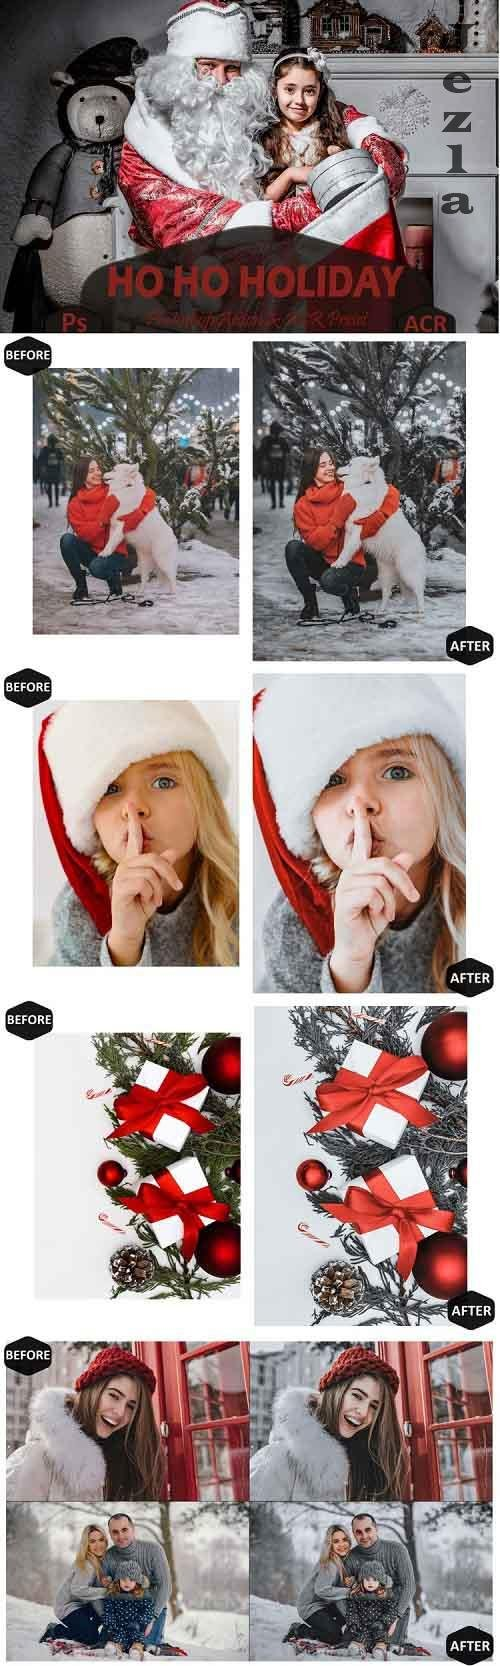 10 Ho Ho Holiday Photoshop Actions And ACR Presets, Ps Xmas - 972216